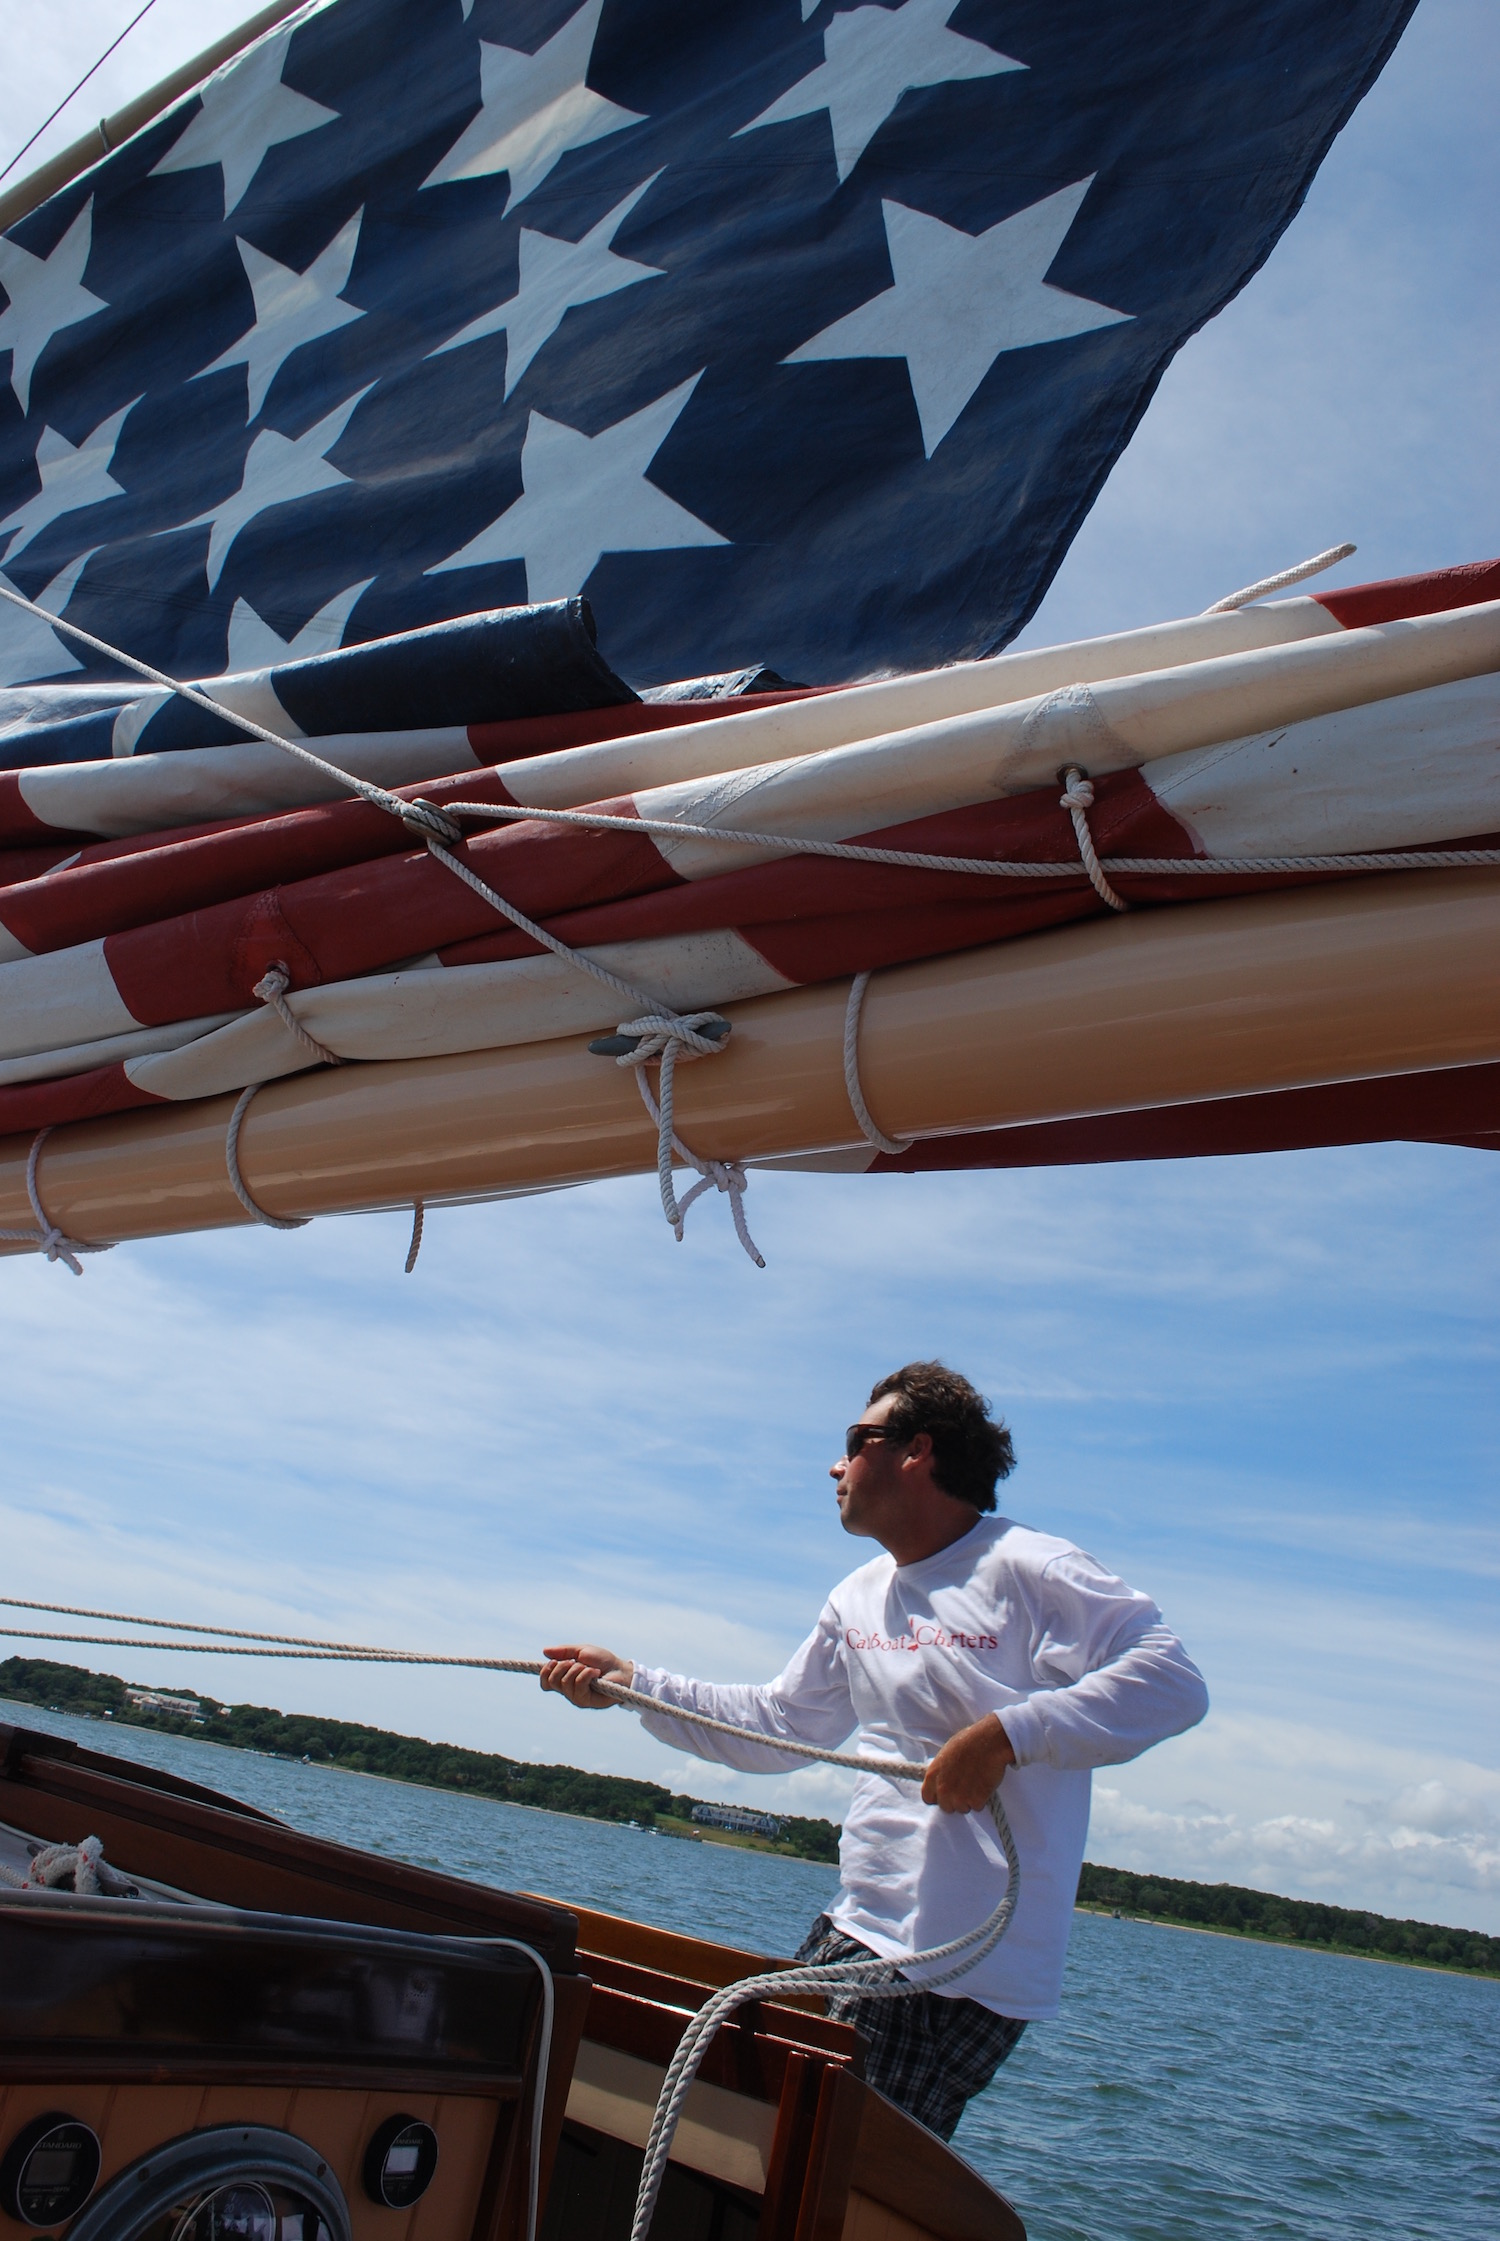 Captain Kurt ...Knowledgeable, skilled, entertaining, and just a great guy. This was one of the best experiences we ever had on Martha's Vineyard!